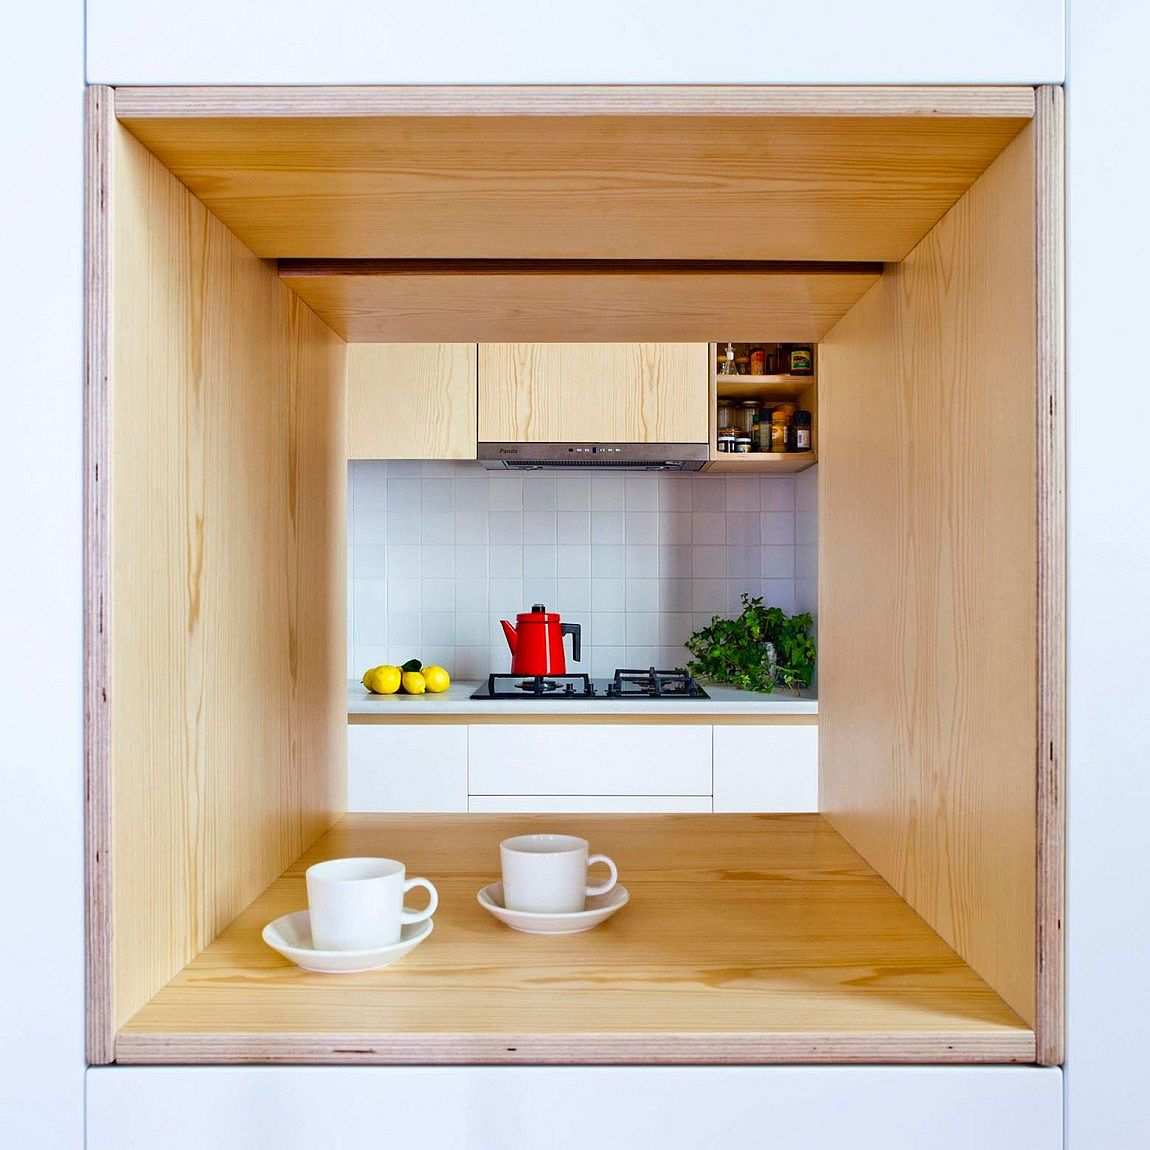 Window into the kitchen also serves as a cool serving station